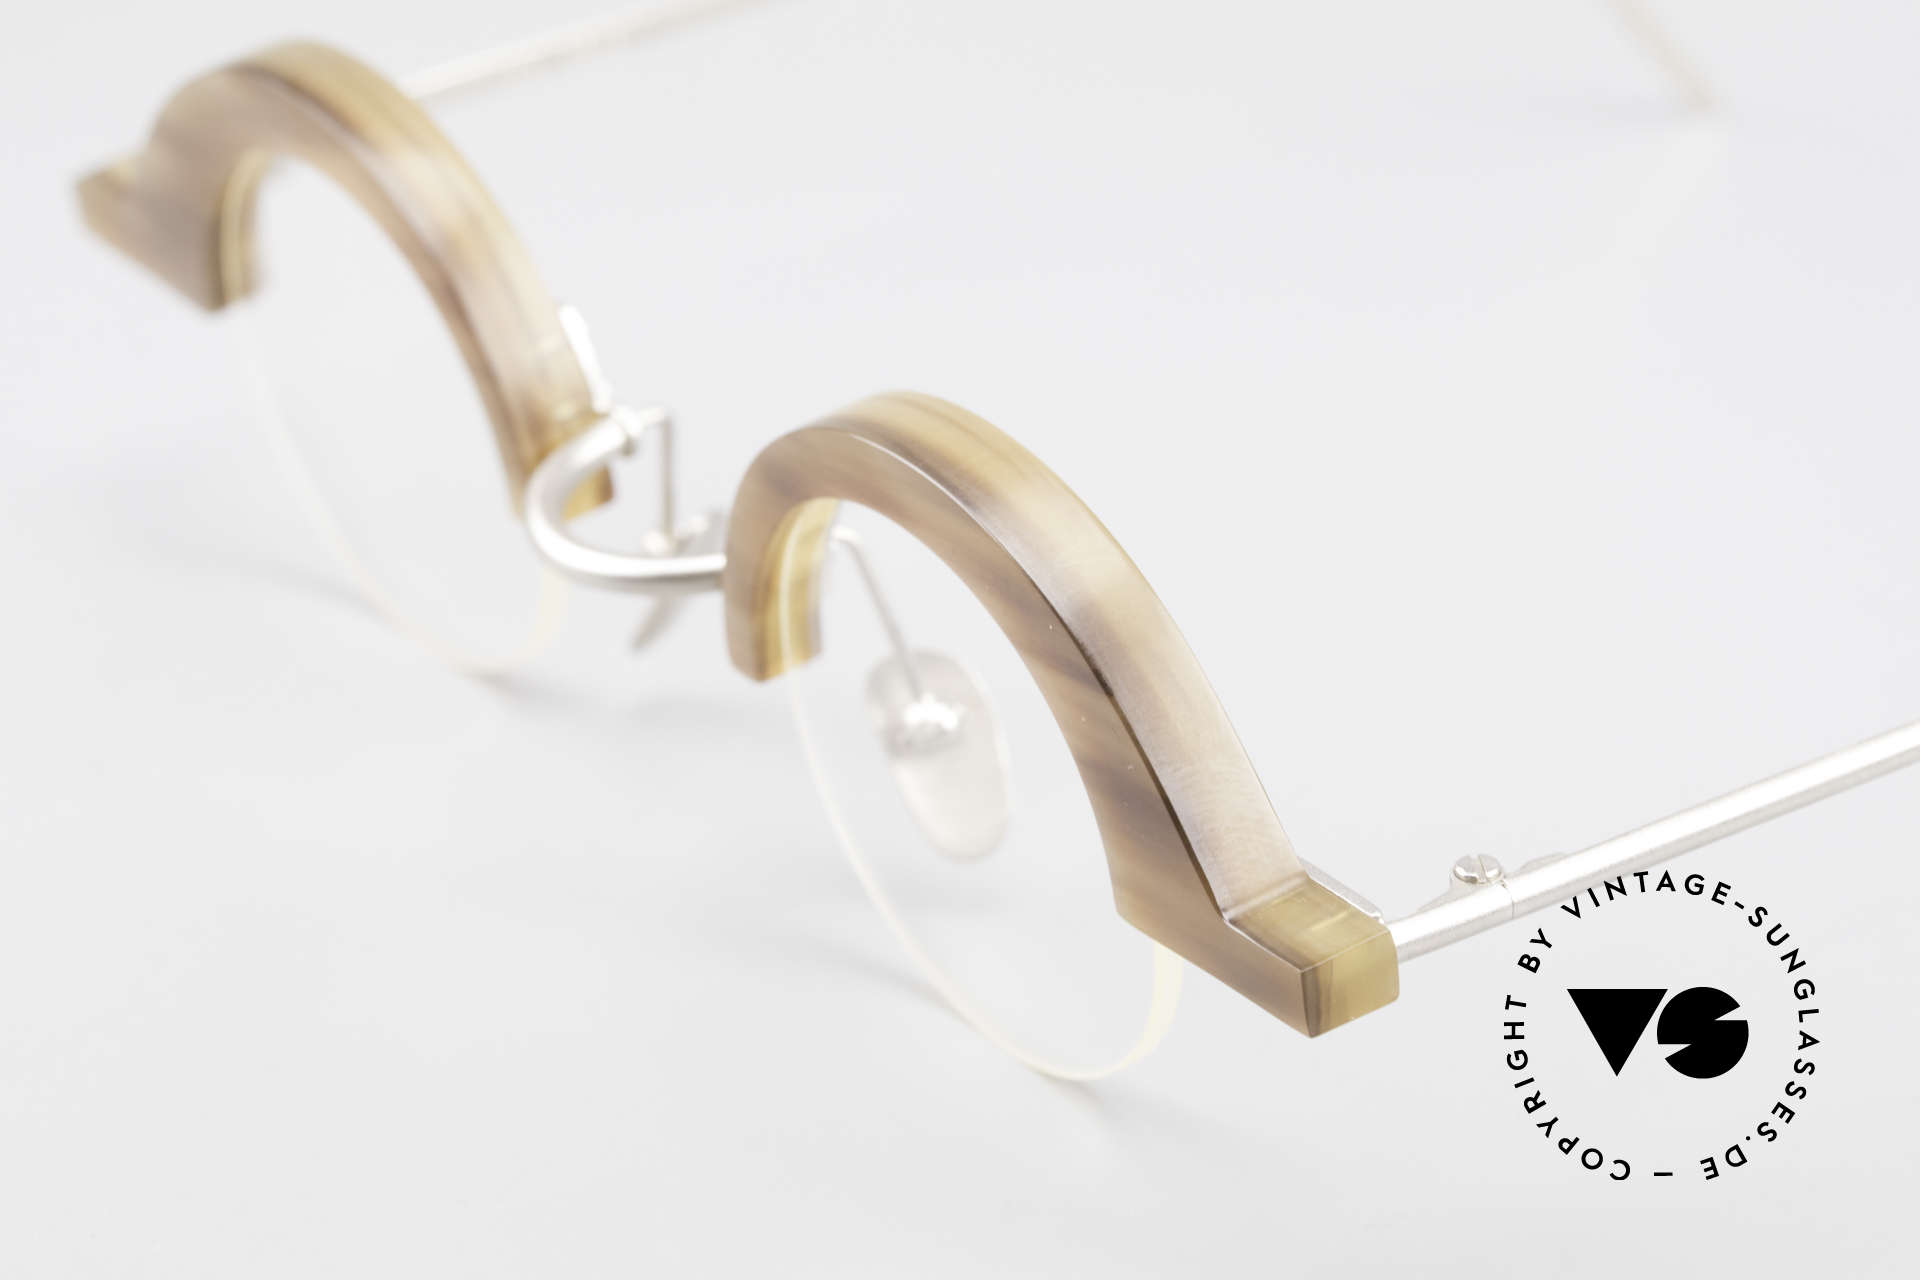 B. Angeletti Baal Redesign Genuine Horn Glasses 1994, every model (made of horn) looks individual / unique, Made for Men and Women